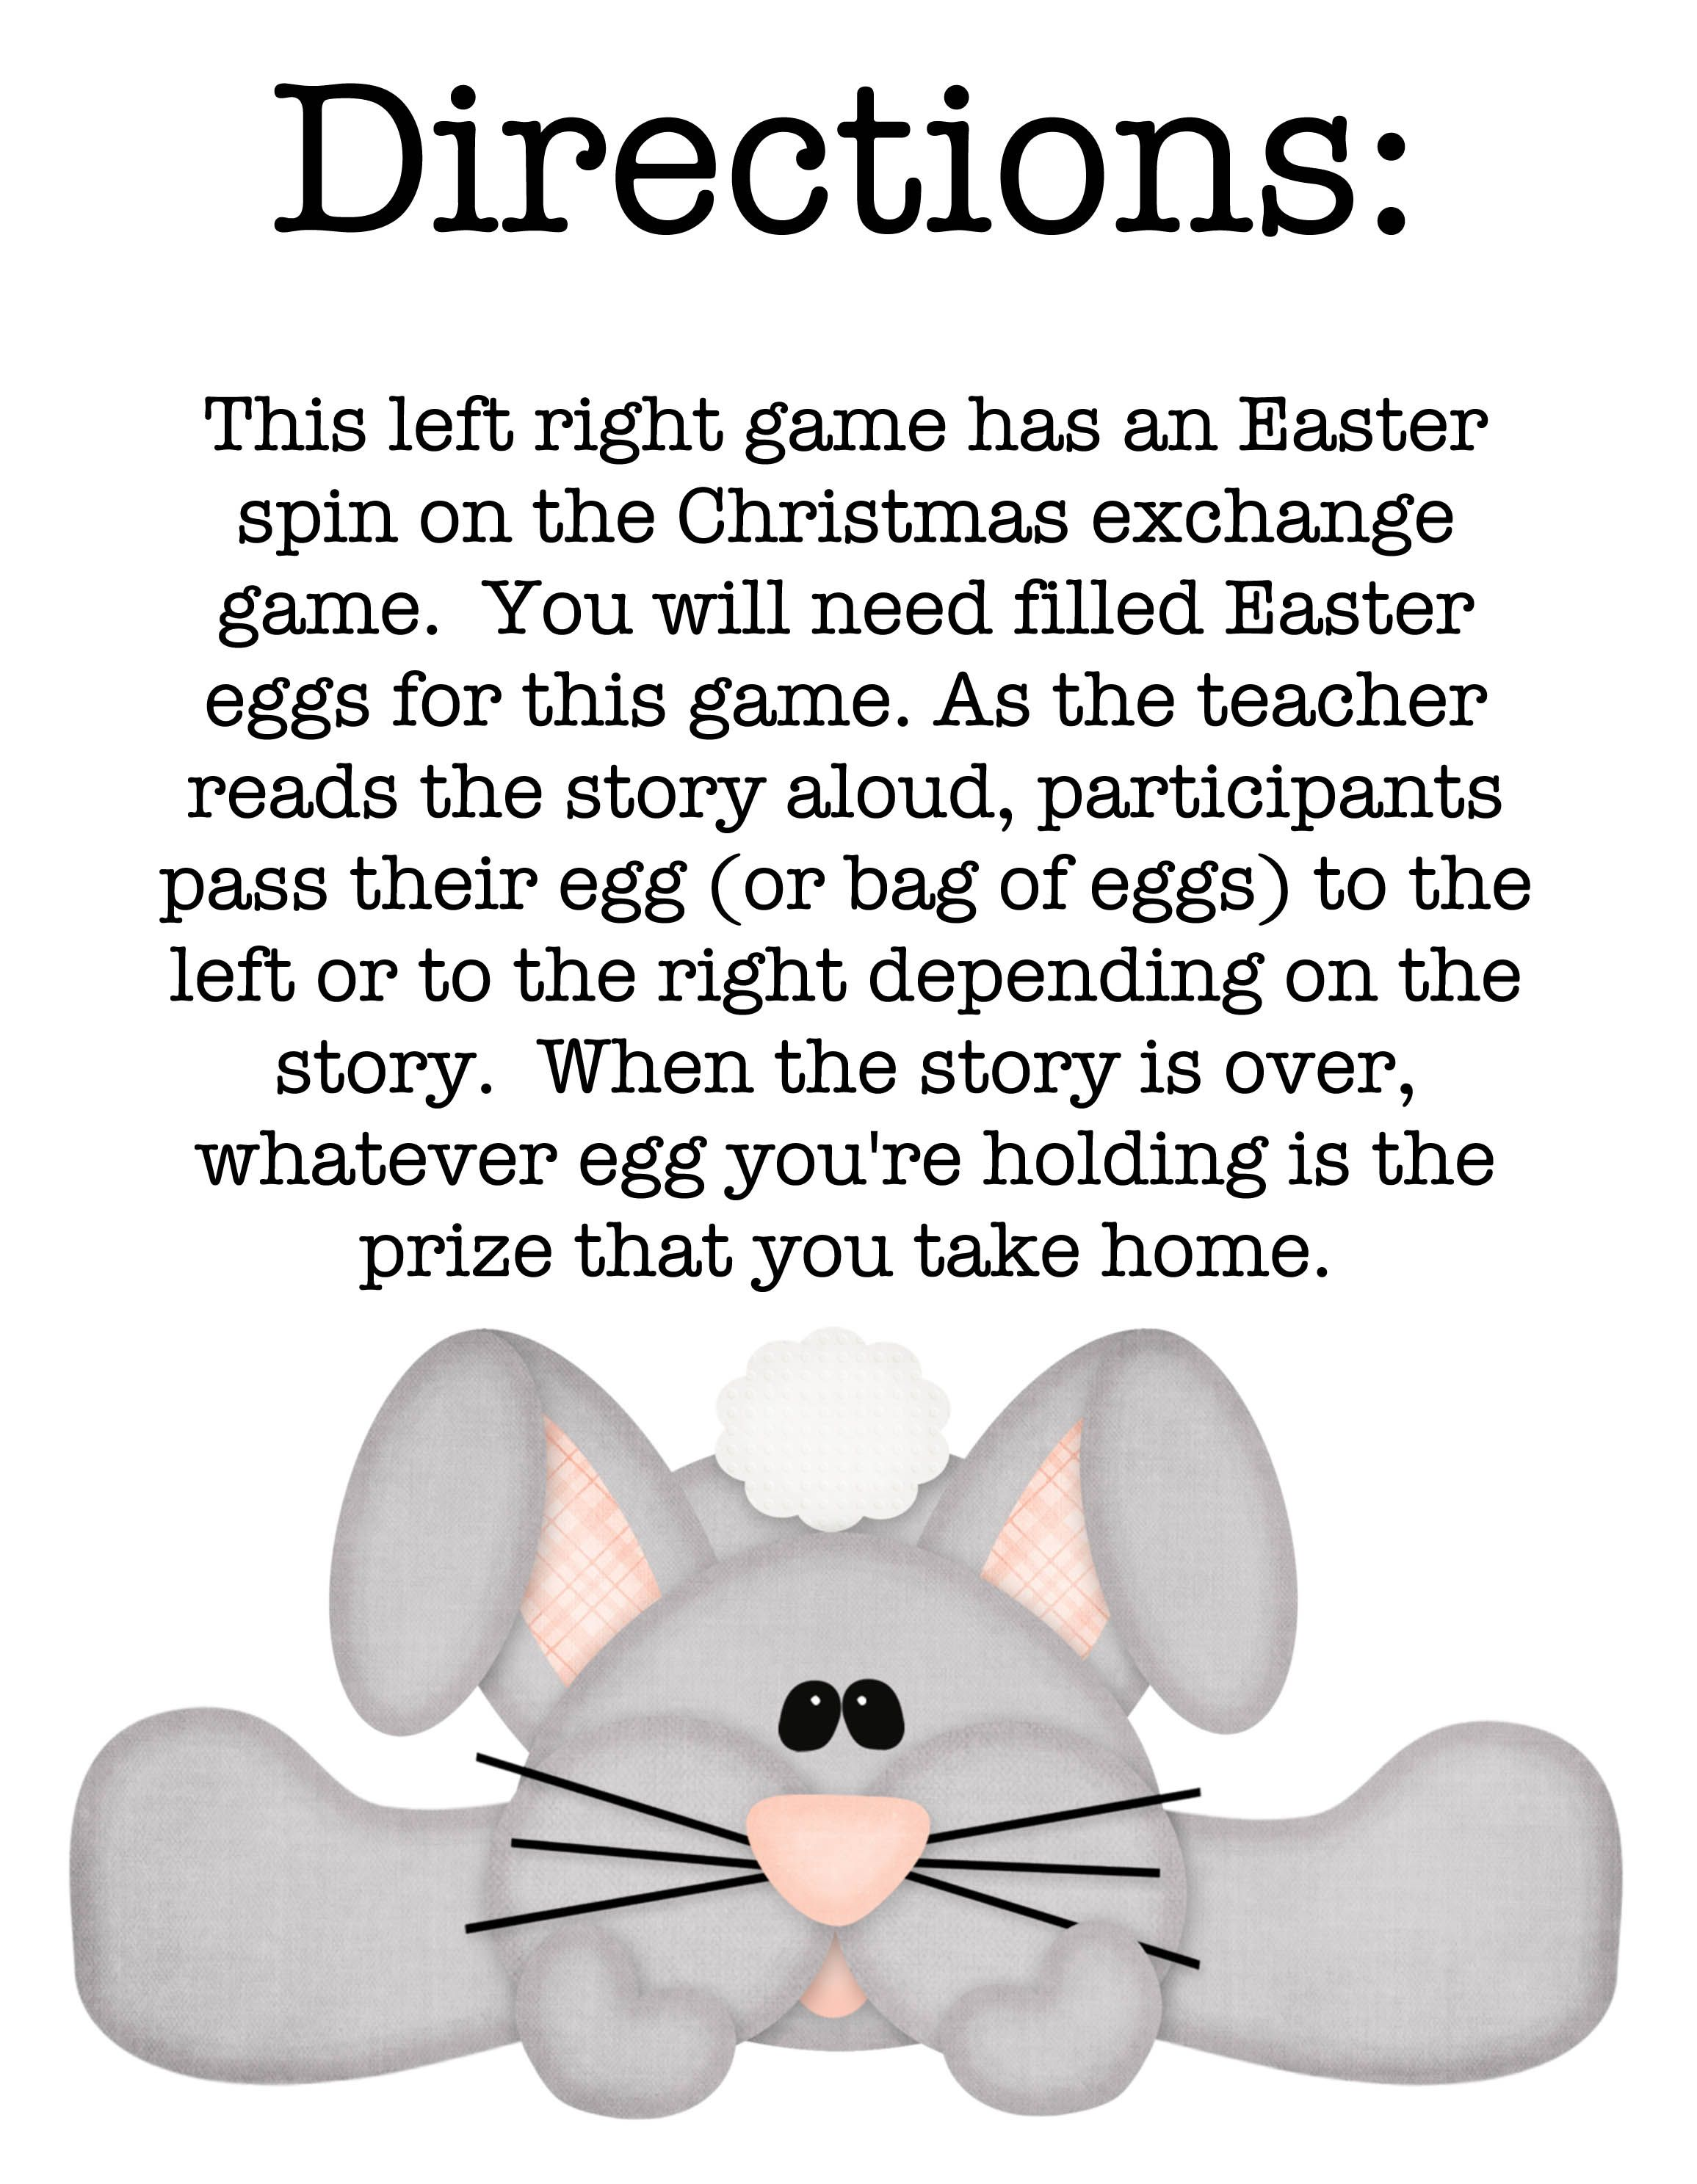 A bunny tale left right game easter spin and bunny this left right game has an easter spin on the christmas exchange game you will need filled easter eggs for this game as the teacher reads the story aloud negle Choice Image